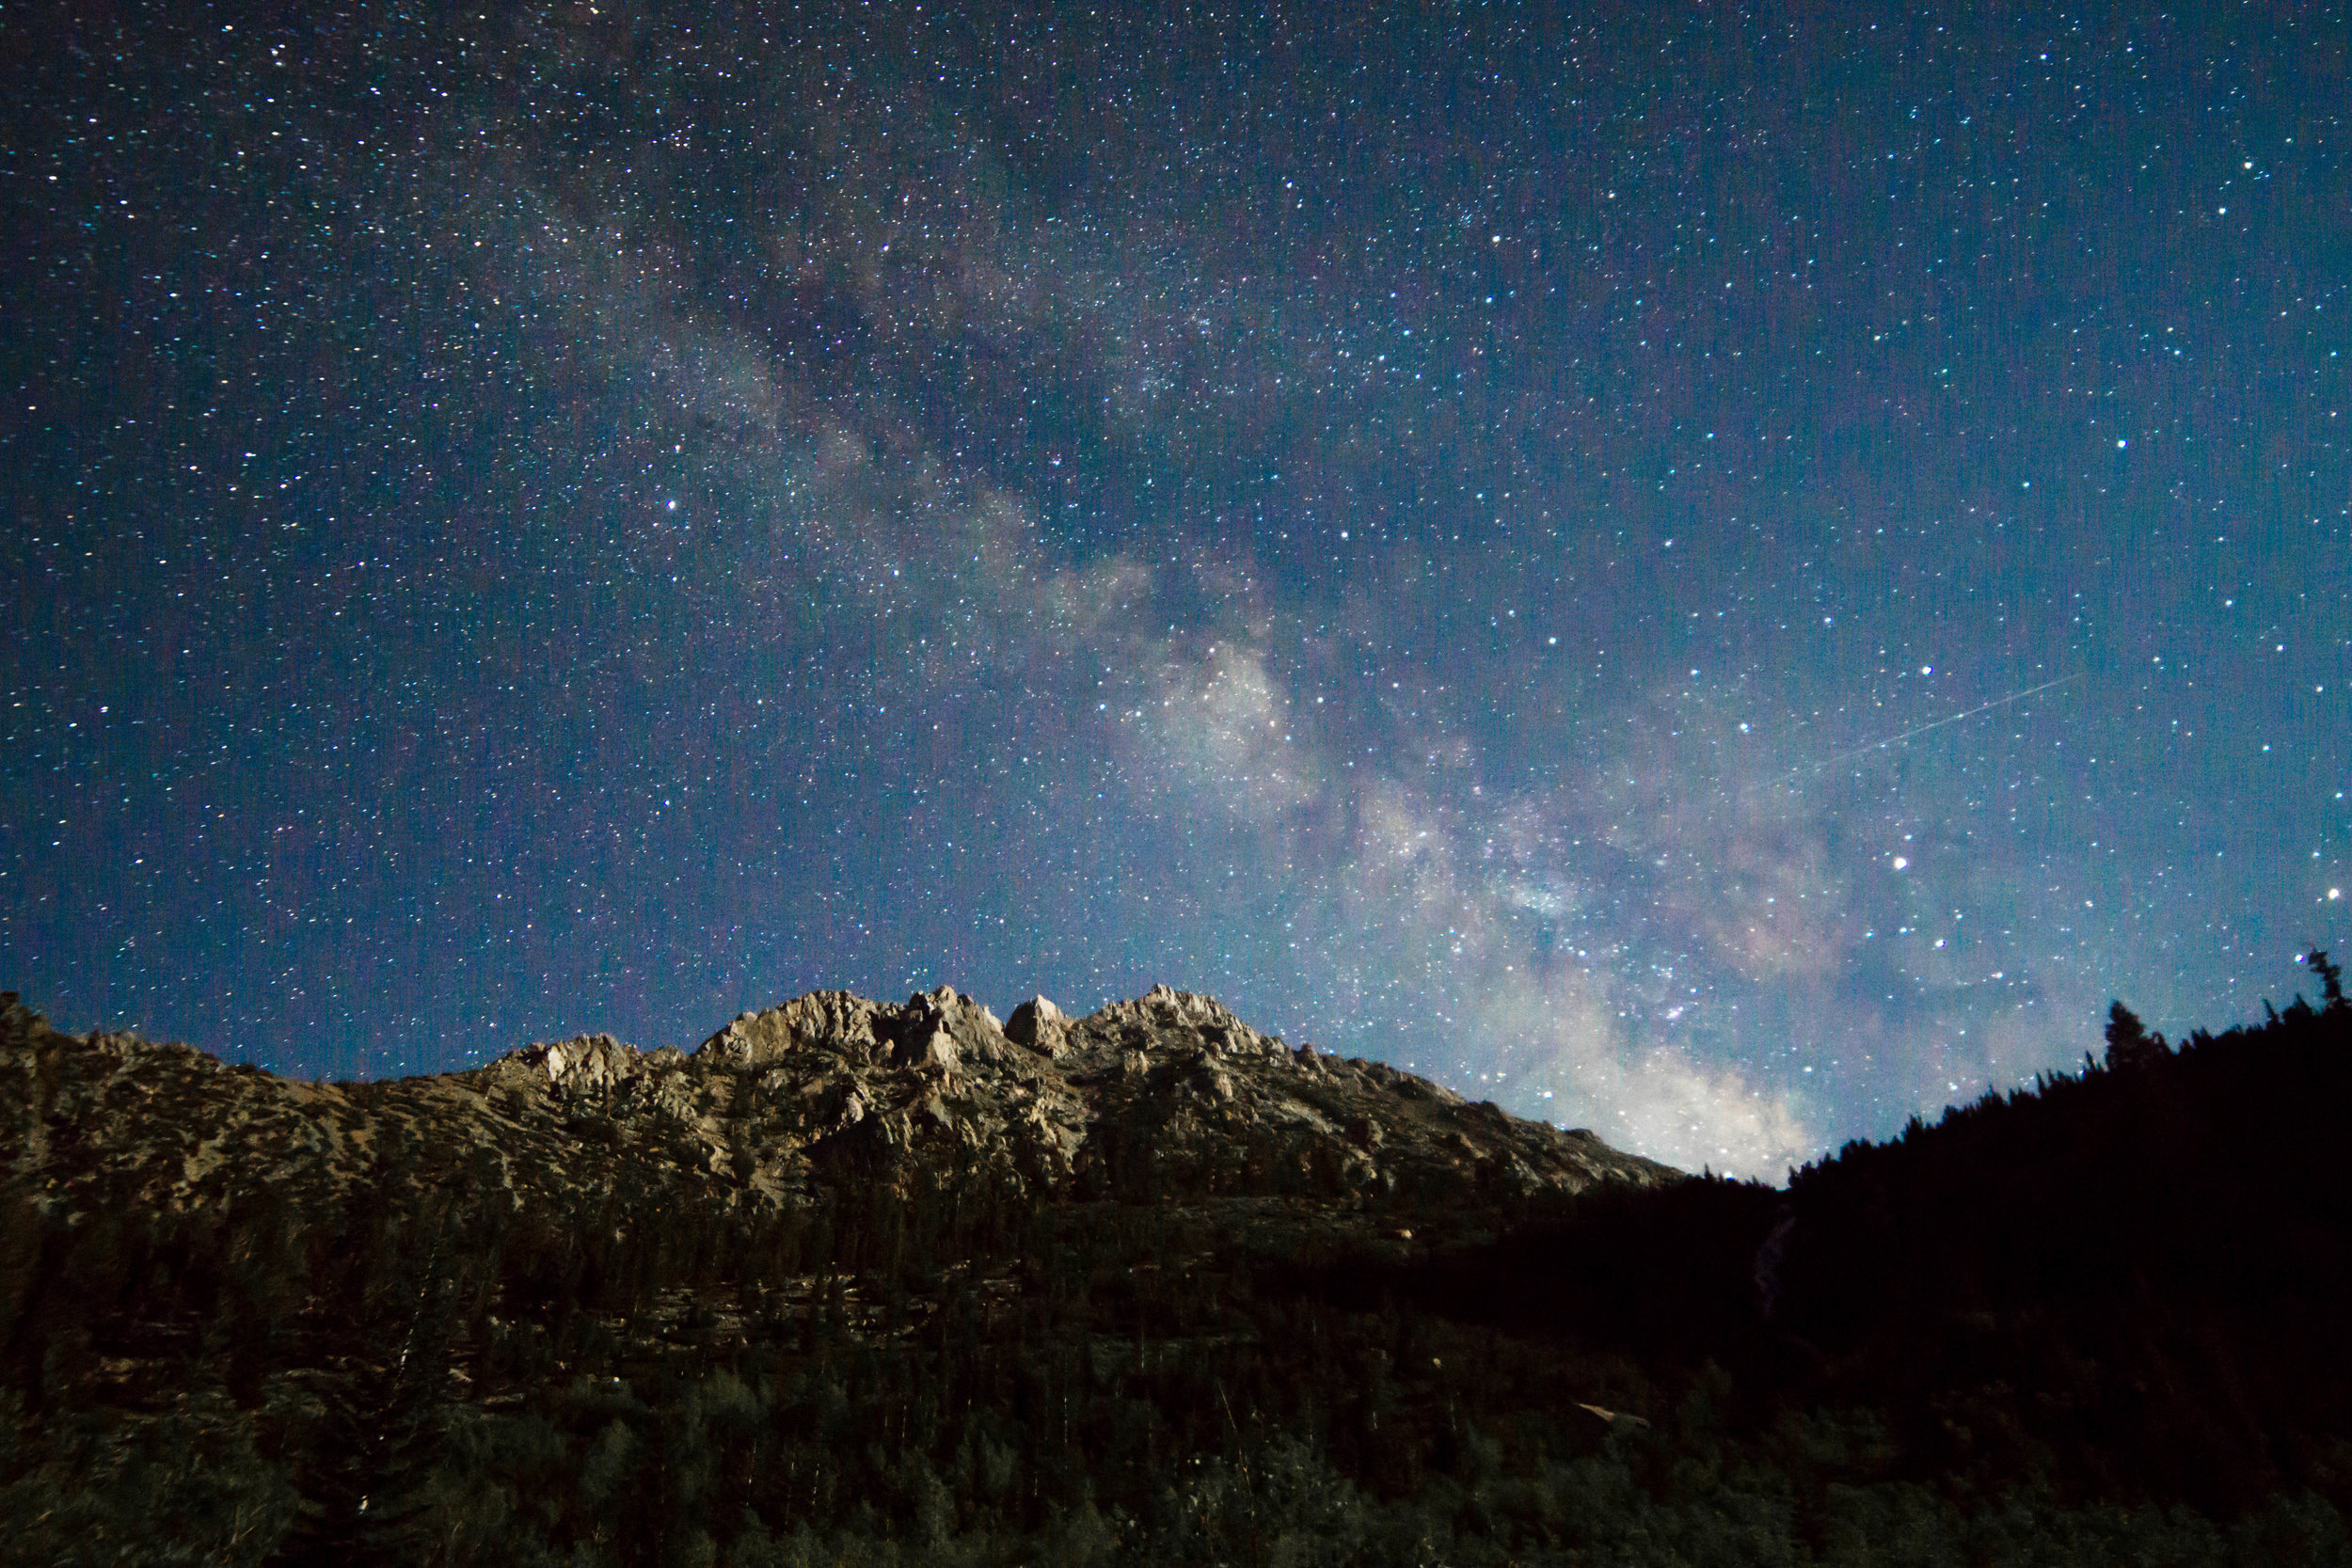 Summer stargazing provides the best viewing of the stars, since the core of the milky way shimmers nightly..